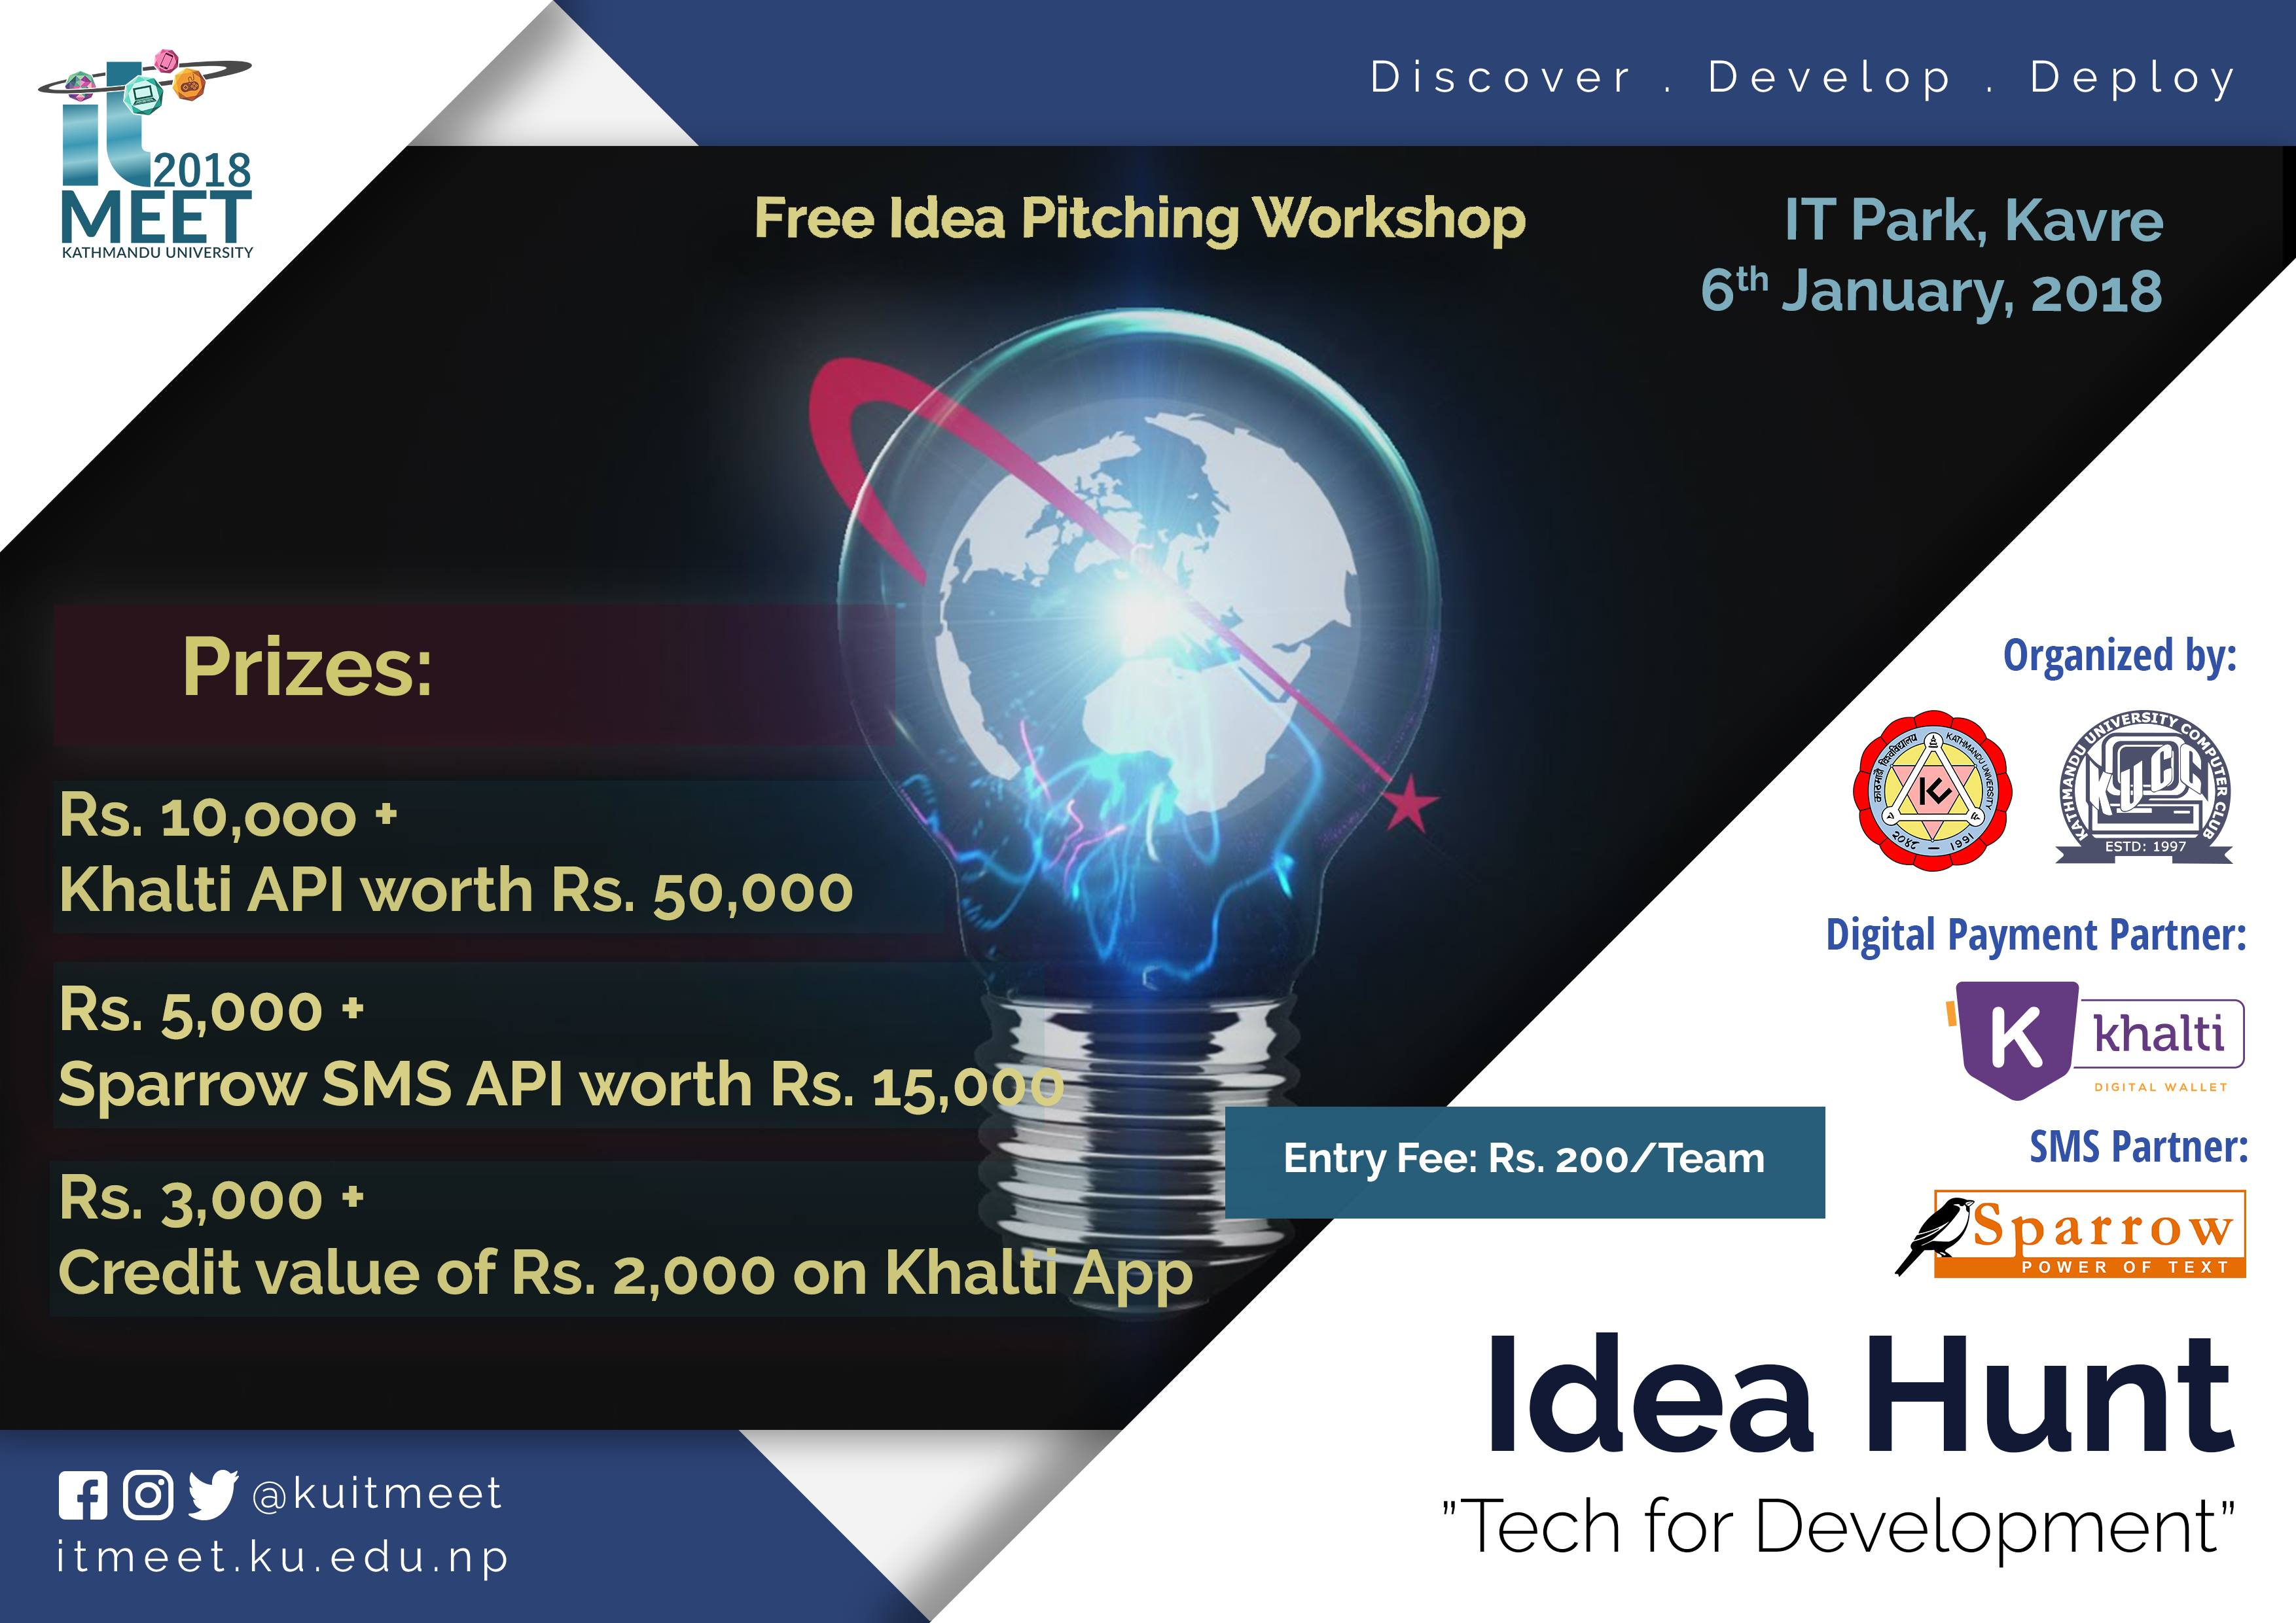 Call for Applications: Idea Hunt at Kathmandu University